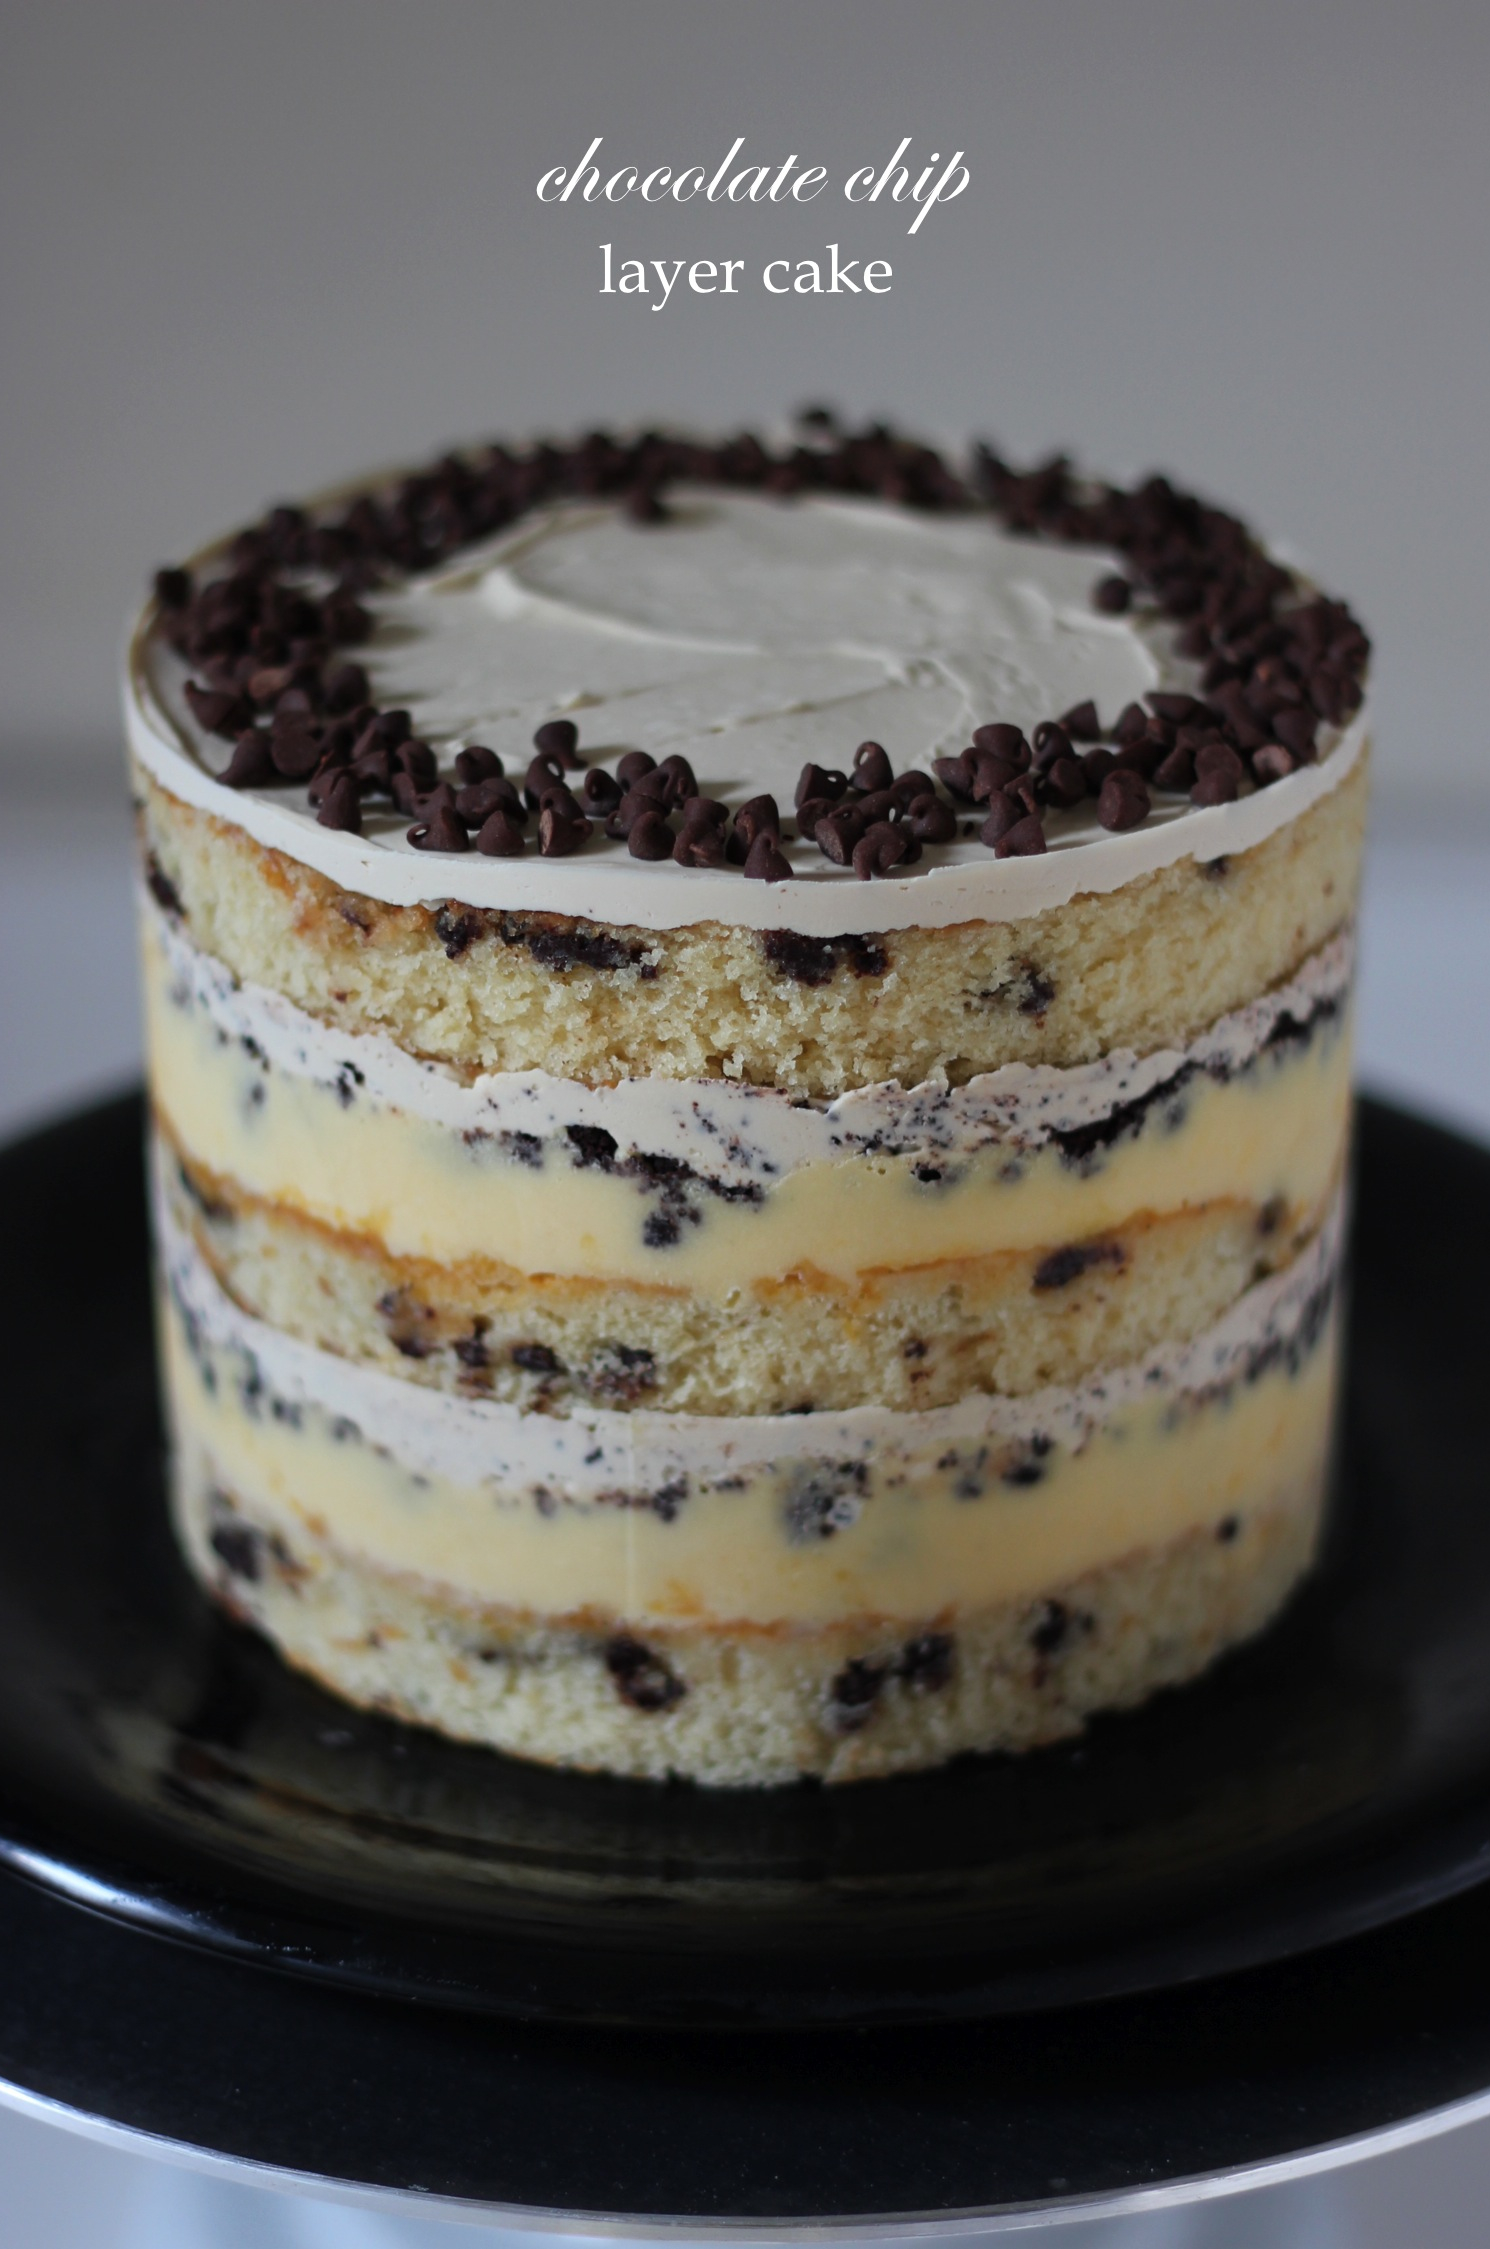 chocolatechipcake1 | margaret in the city